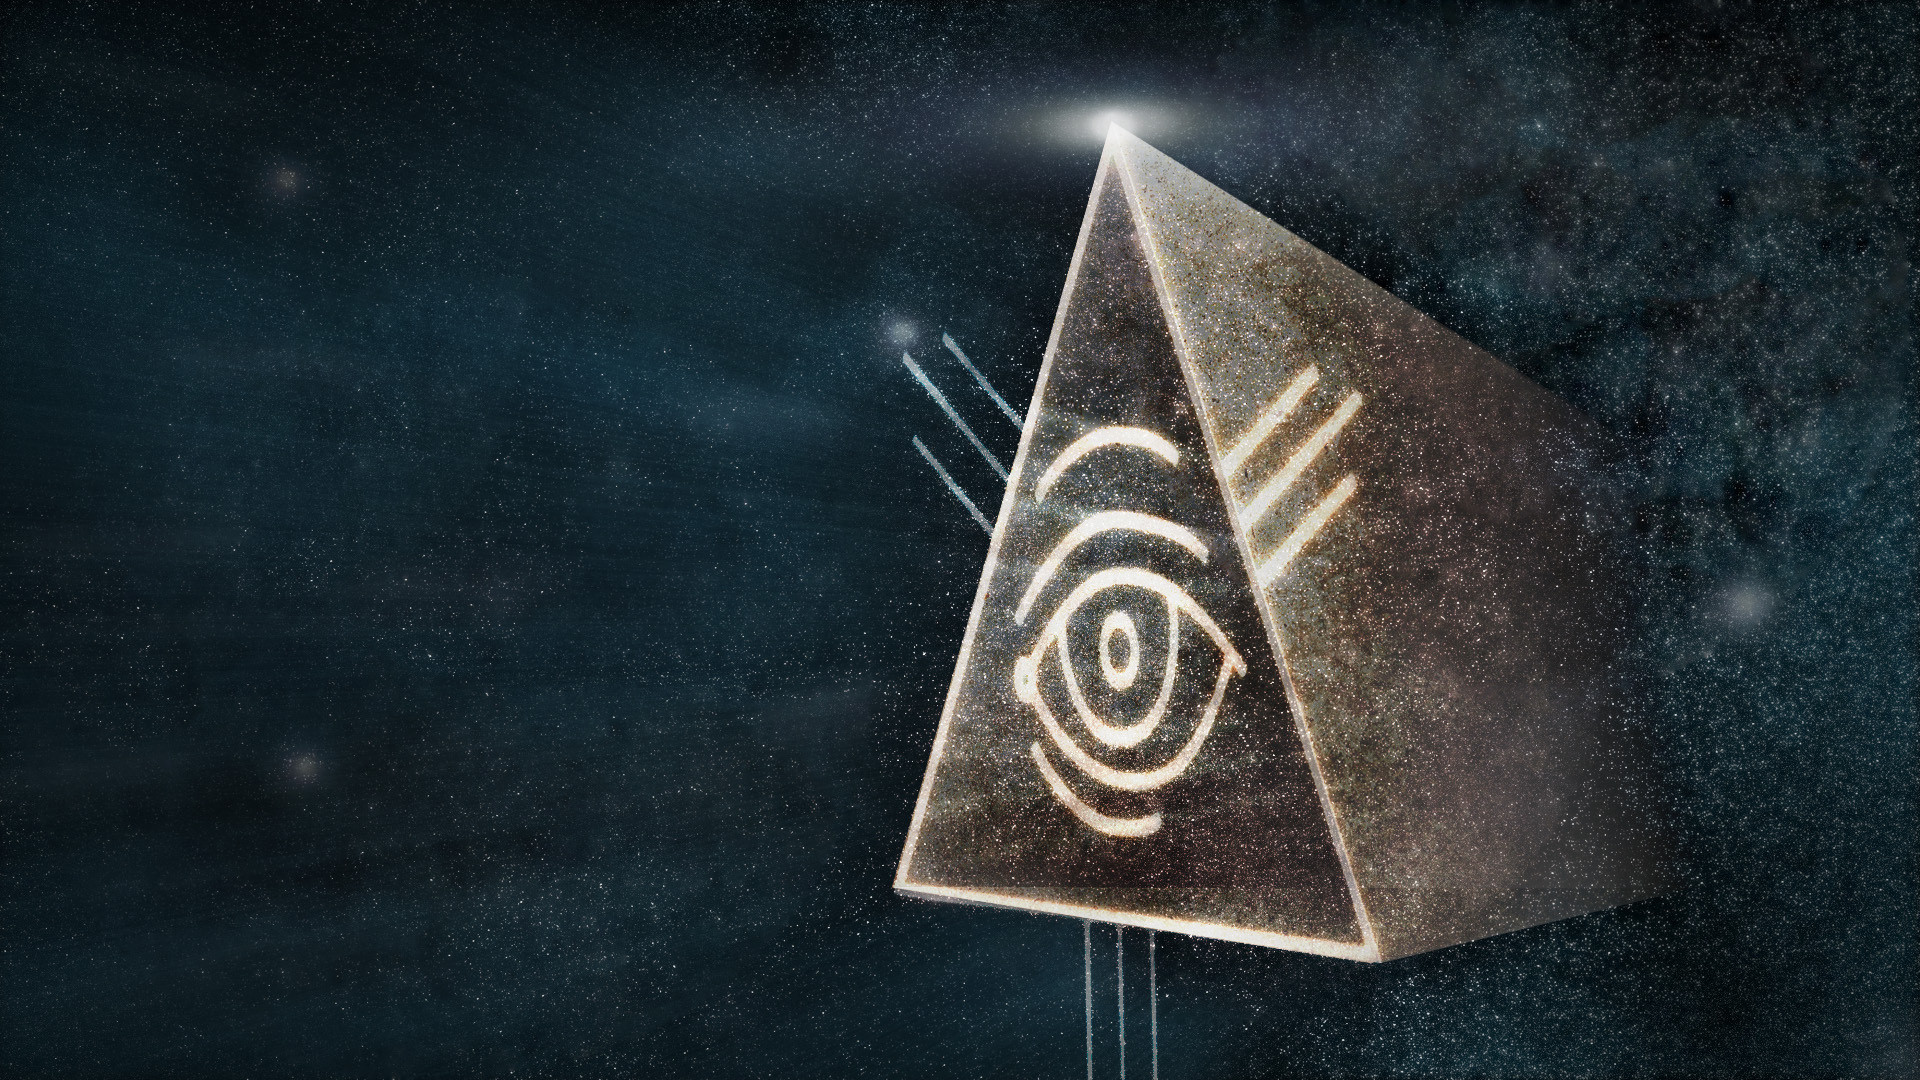 1920x1080 HD backgrounds illuminati wallpapers.